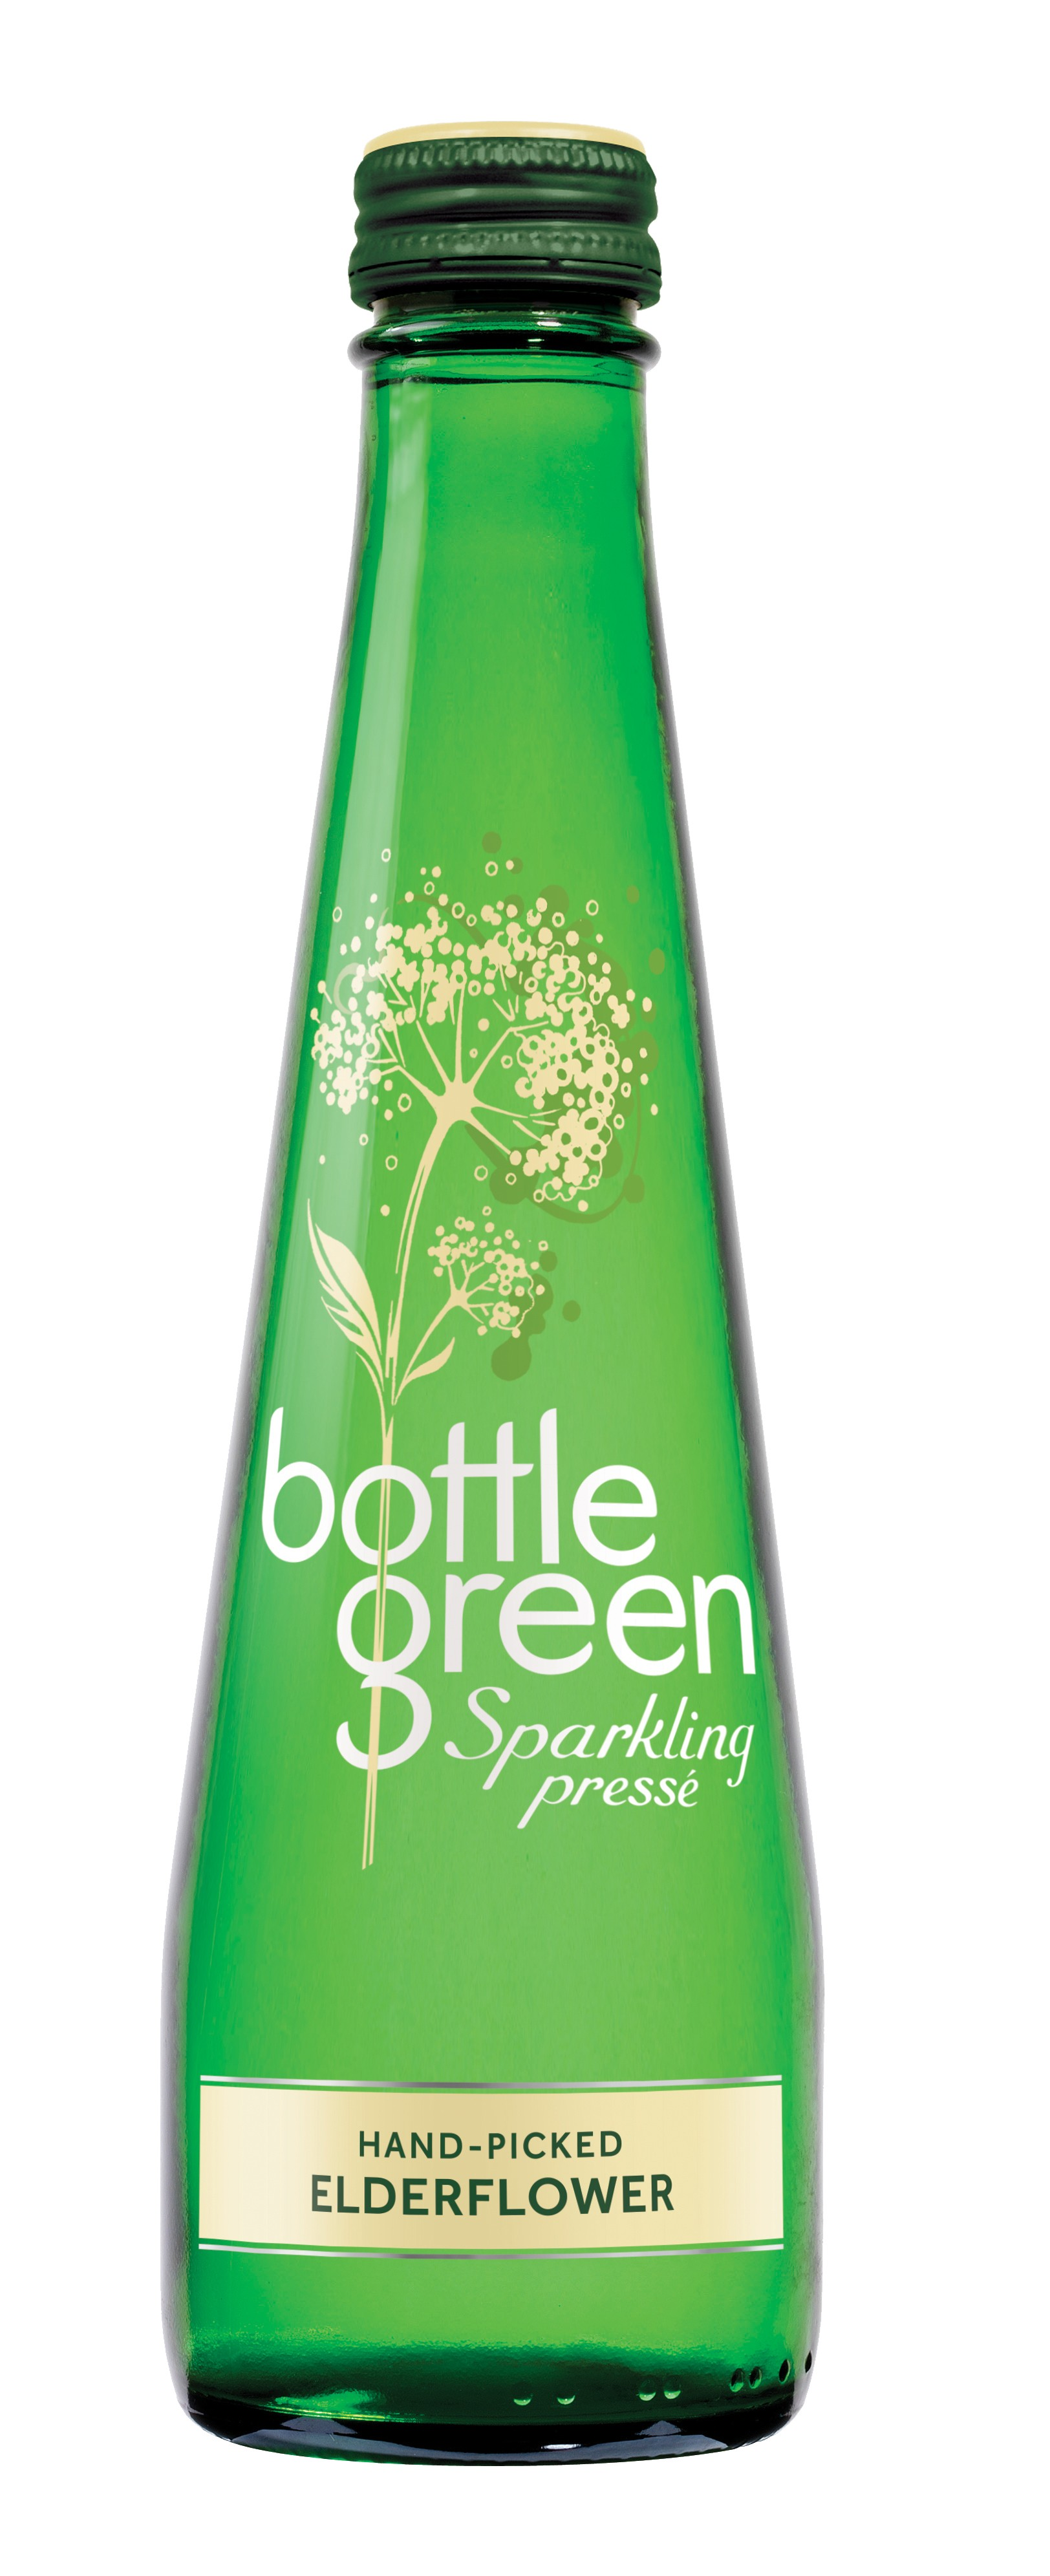 Bottle Green Elderflower Sparkling Presse 12 x 275ml